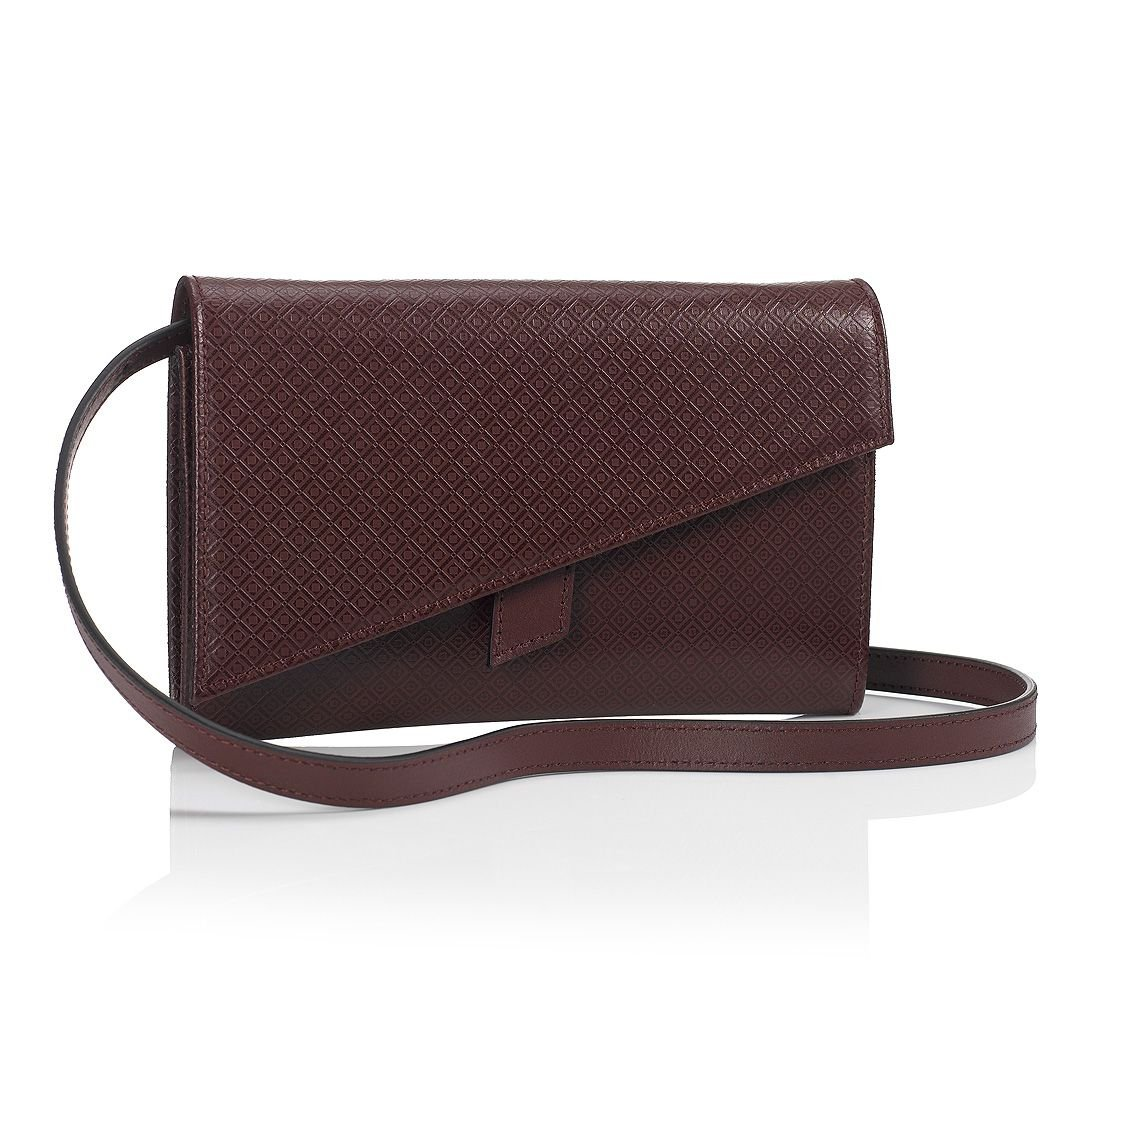 Mark Giusti Soho Patterned Leather Clutch (Dark Red, One Size)